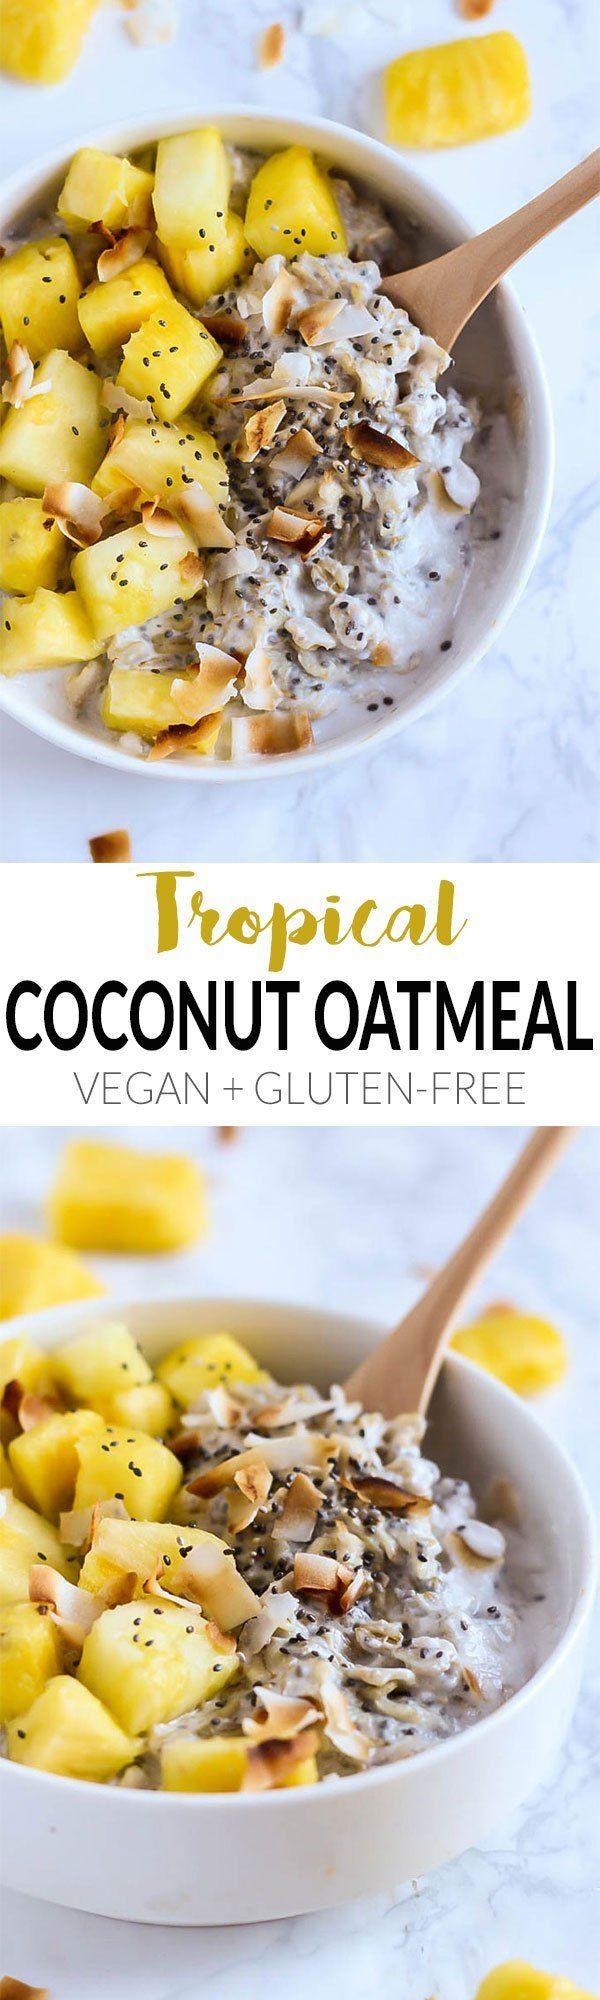 This creamy Tropical Coconut Oatmeal is like the beach in a bowl! Topped with juicy pineapple, it's the perfect vegan & gluten-free breakfast recipe for everyone.